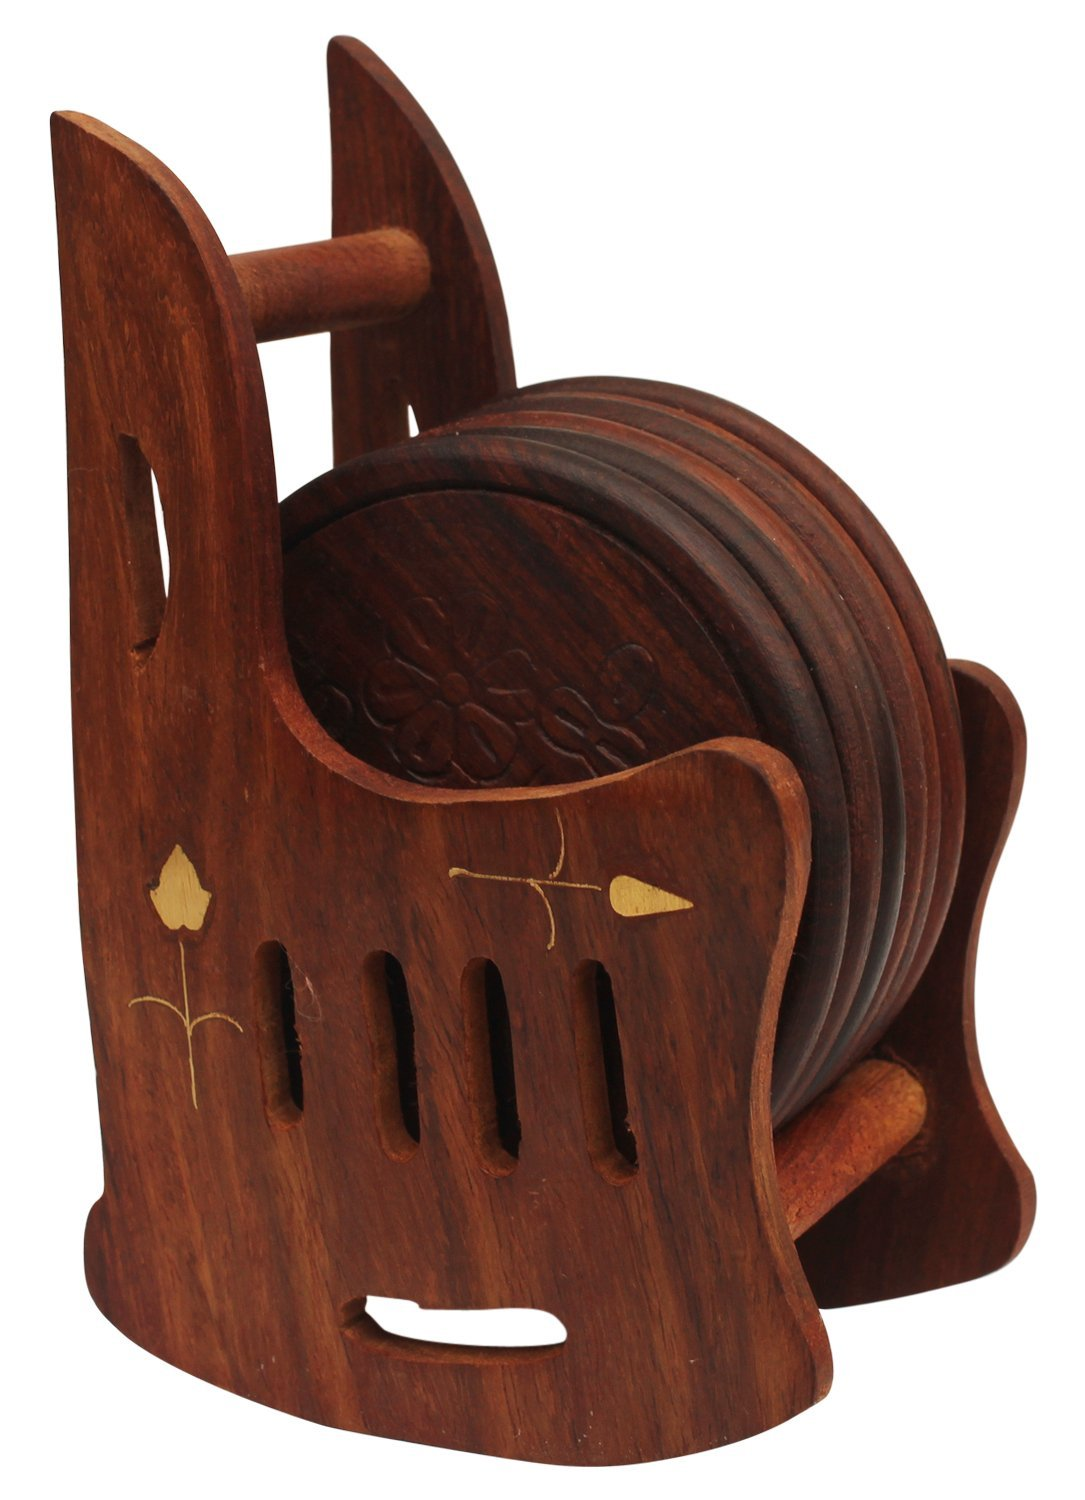 Handmade 5 Inches Wooden Set Of 6 Coasters With Rocking Chair Holder In Brown Color by SouvNear